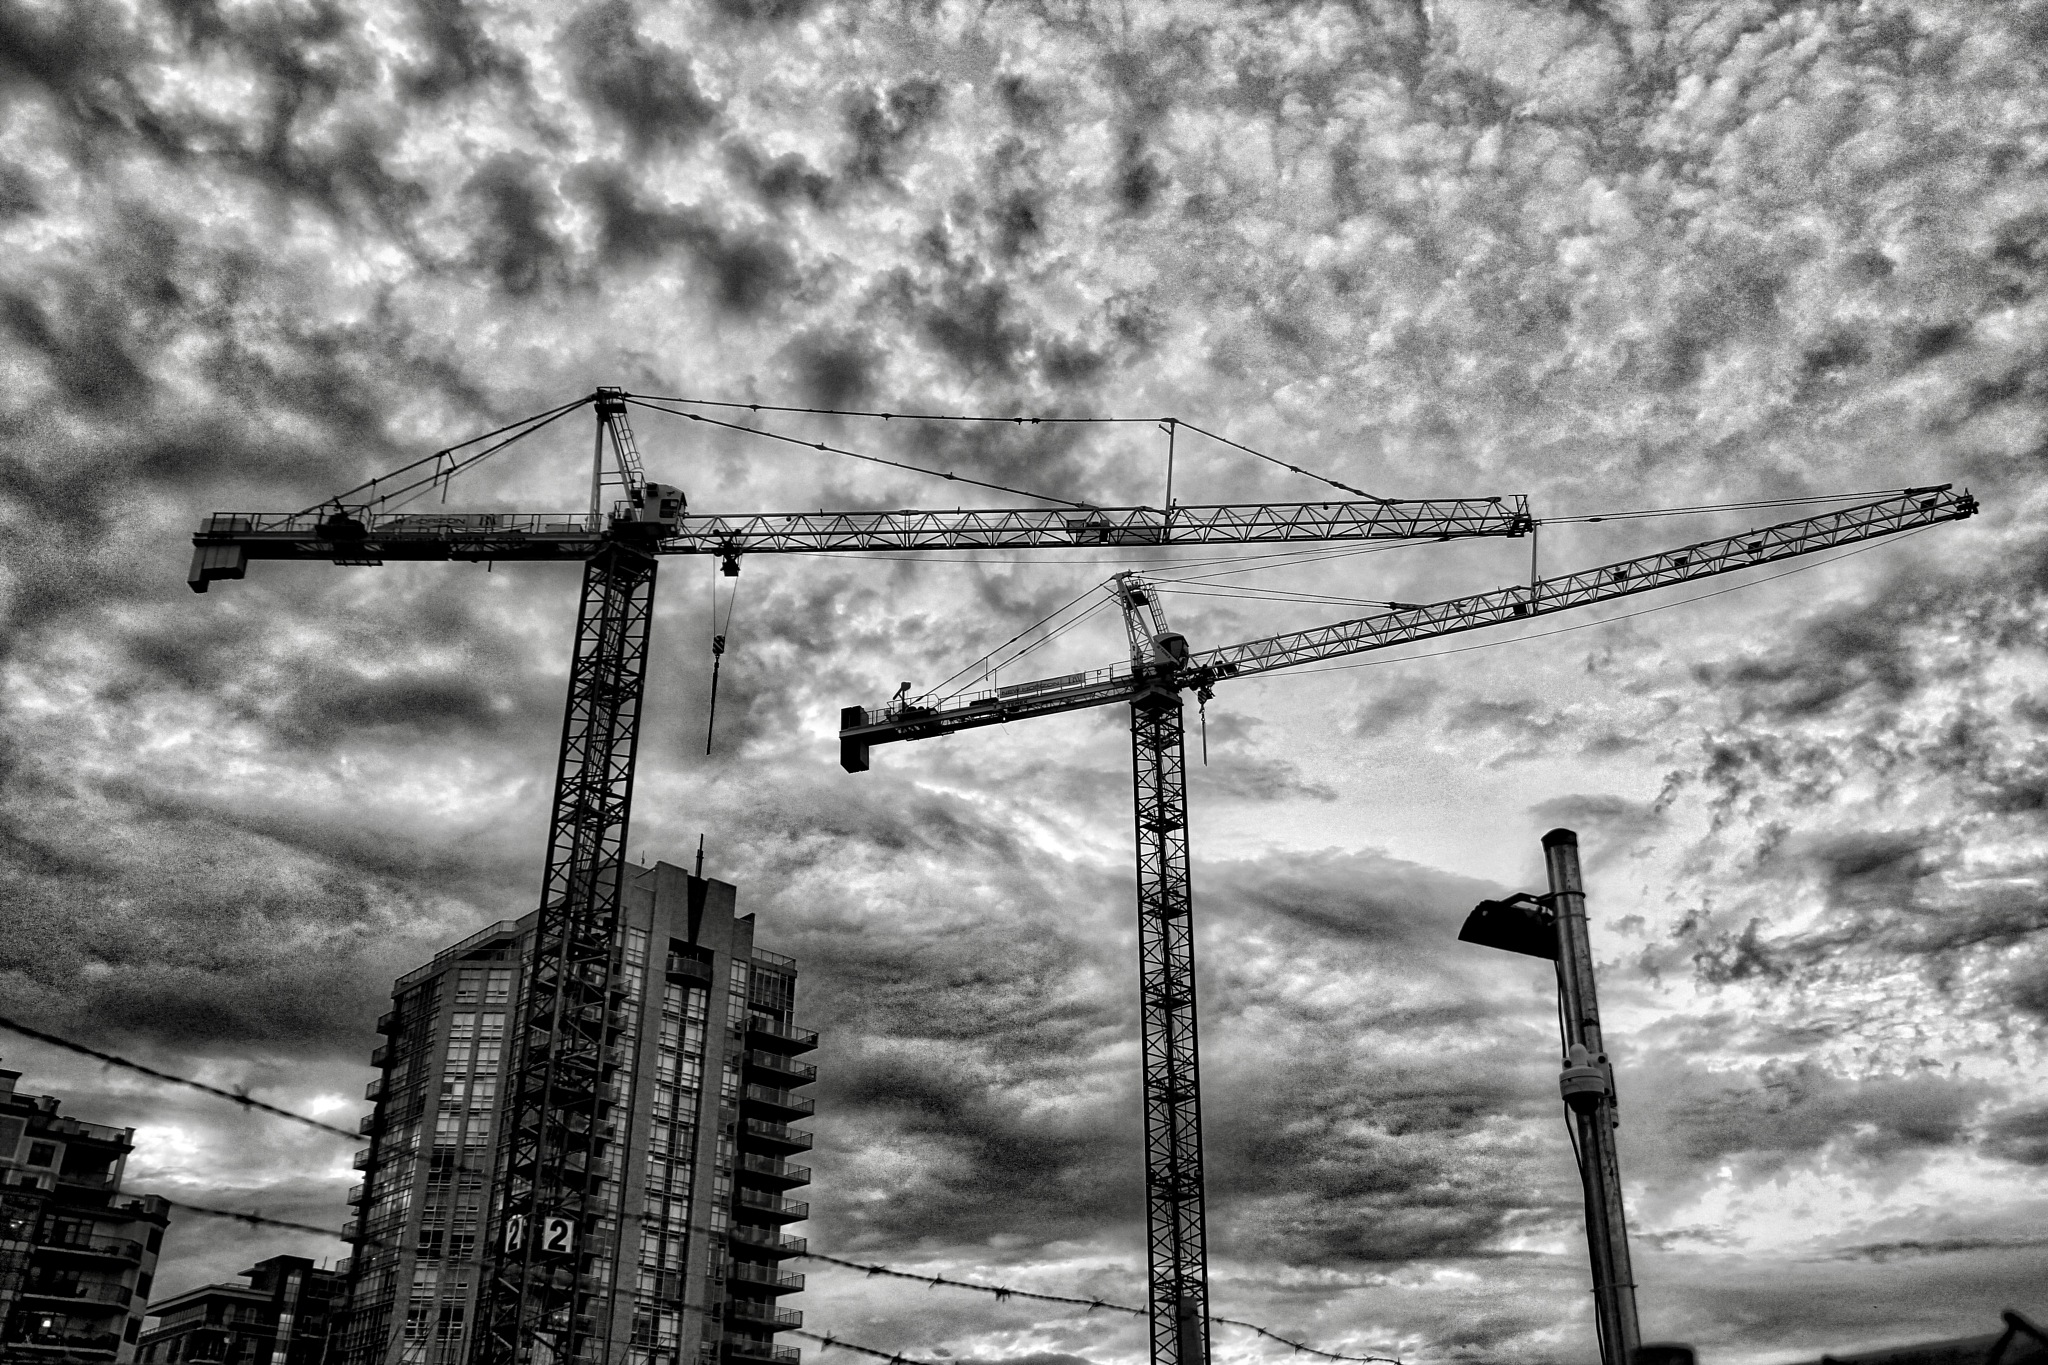 Angry Construction by gerry.lewicki